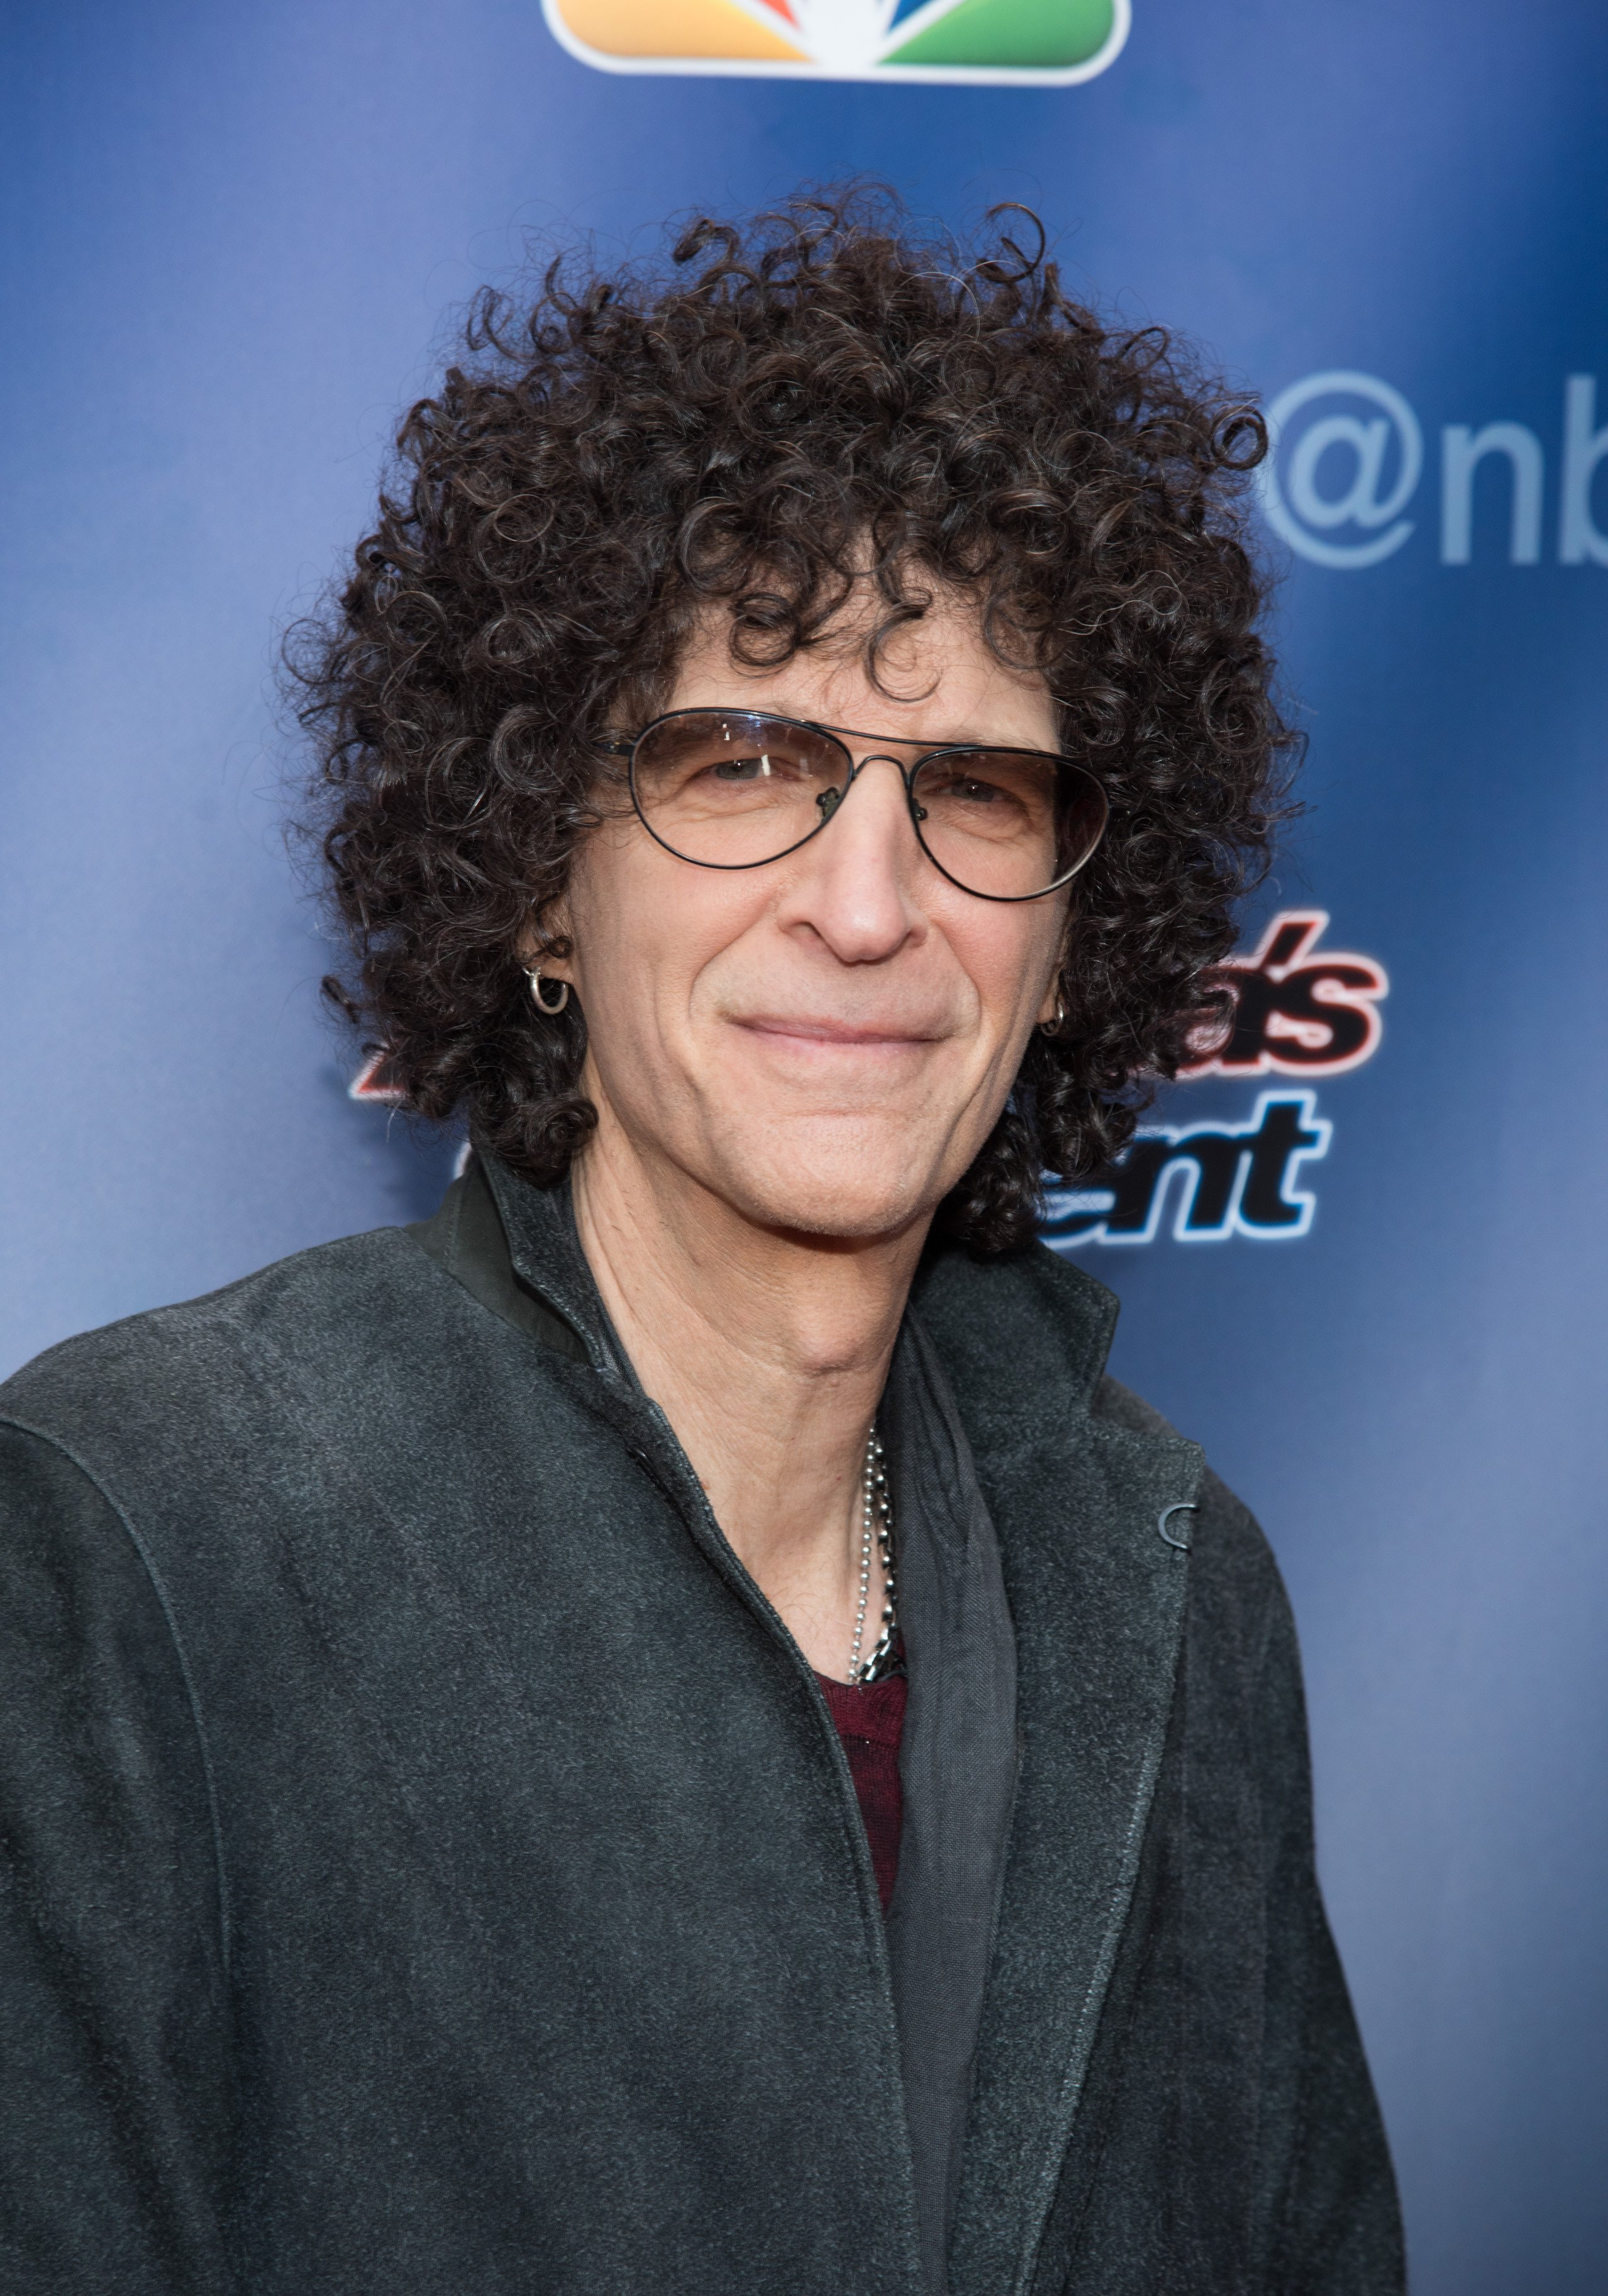 """Howard Stern arrives at the """"America's Got Talent"""" Season 10 Red Carpet Event at New Jersey Performing Arts Center on March 2, 2015. 